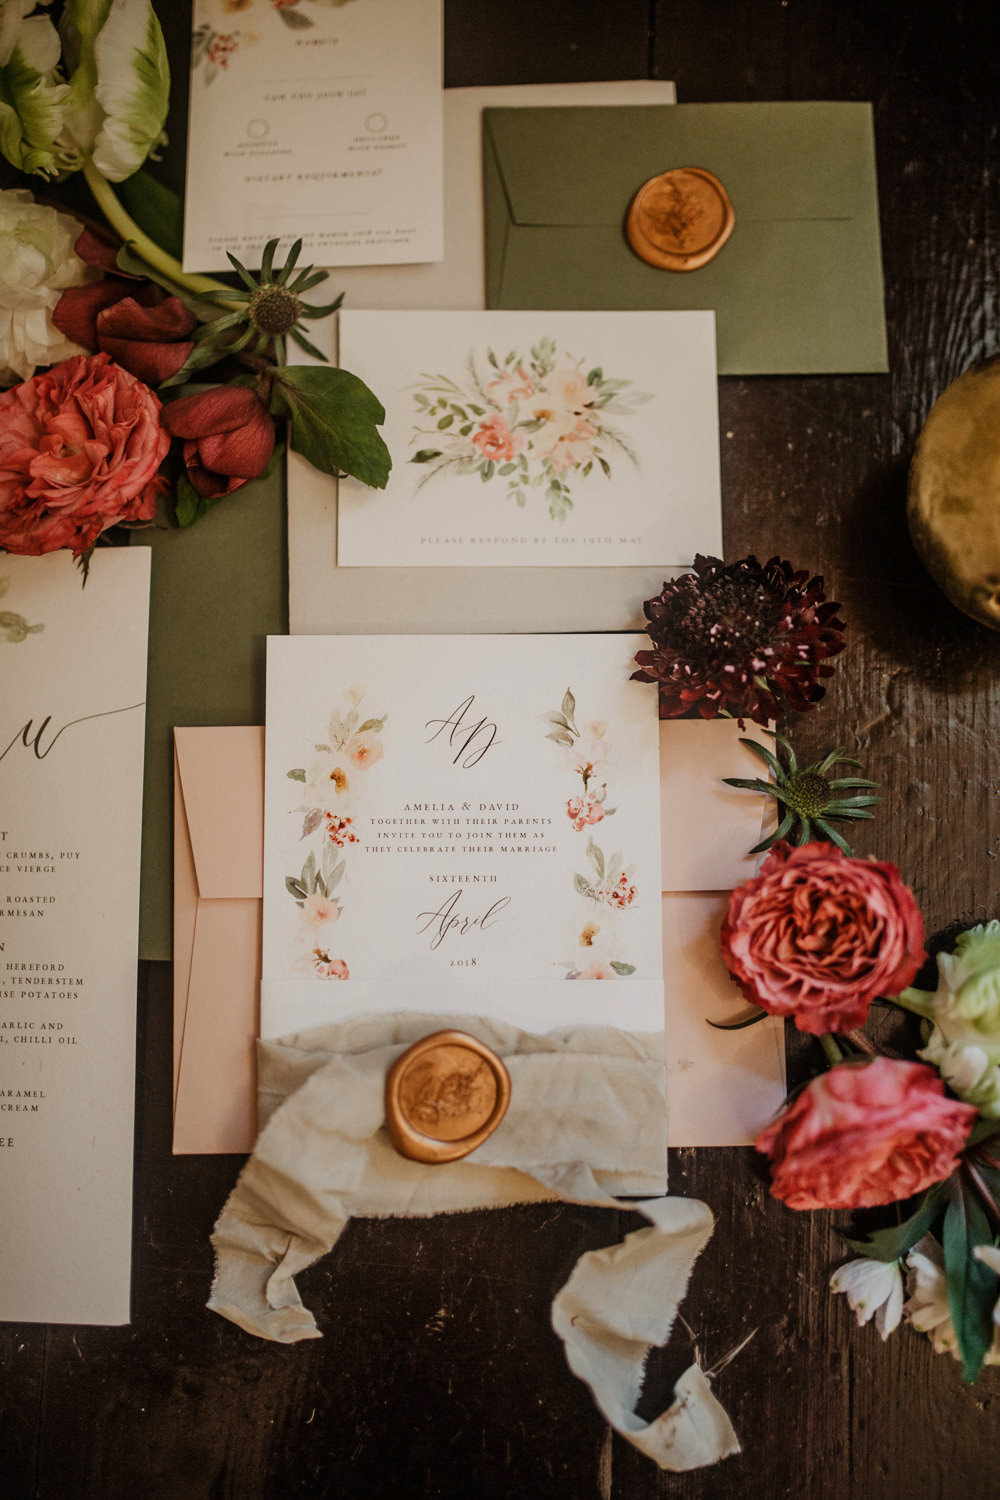 Stationery Invitations Invites Floral Flowers Wax Seal Calligraphy Edwardian Wedding Ideas Camilla Andrea Photography